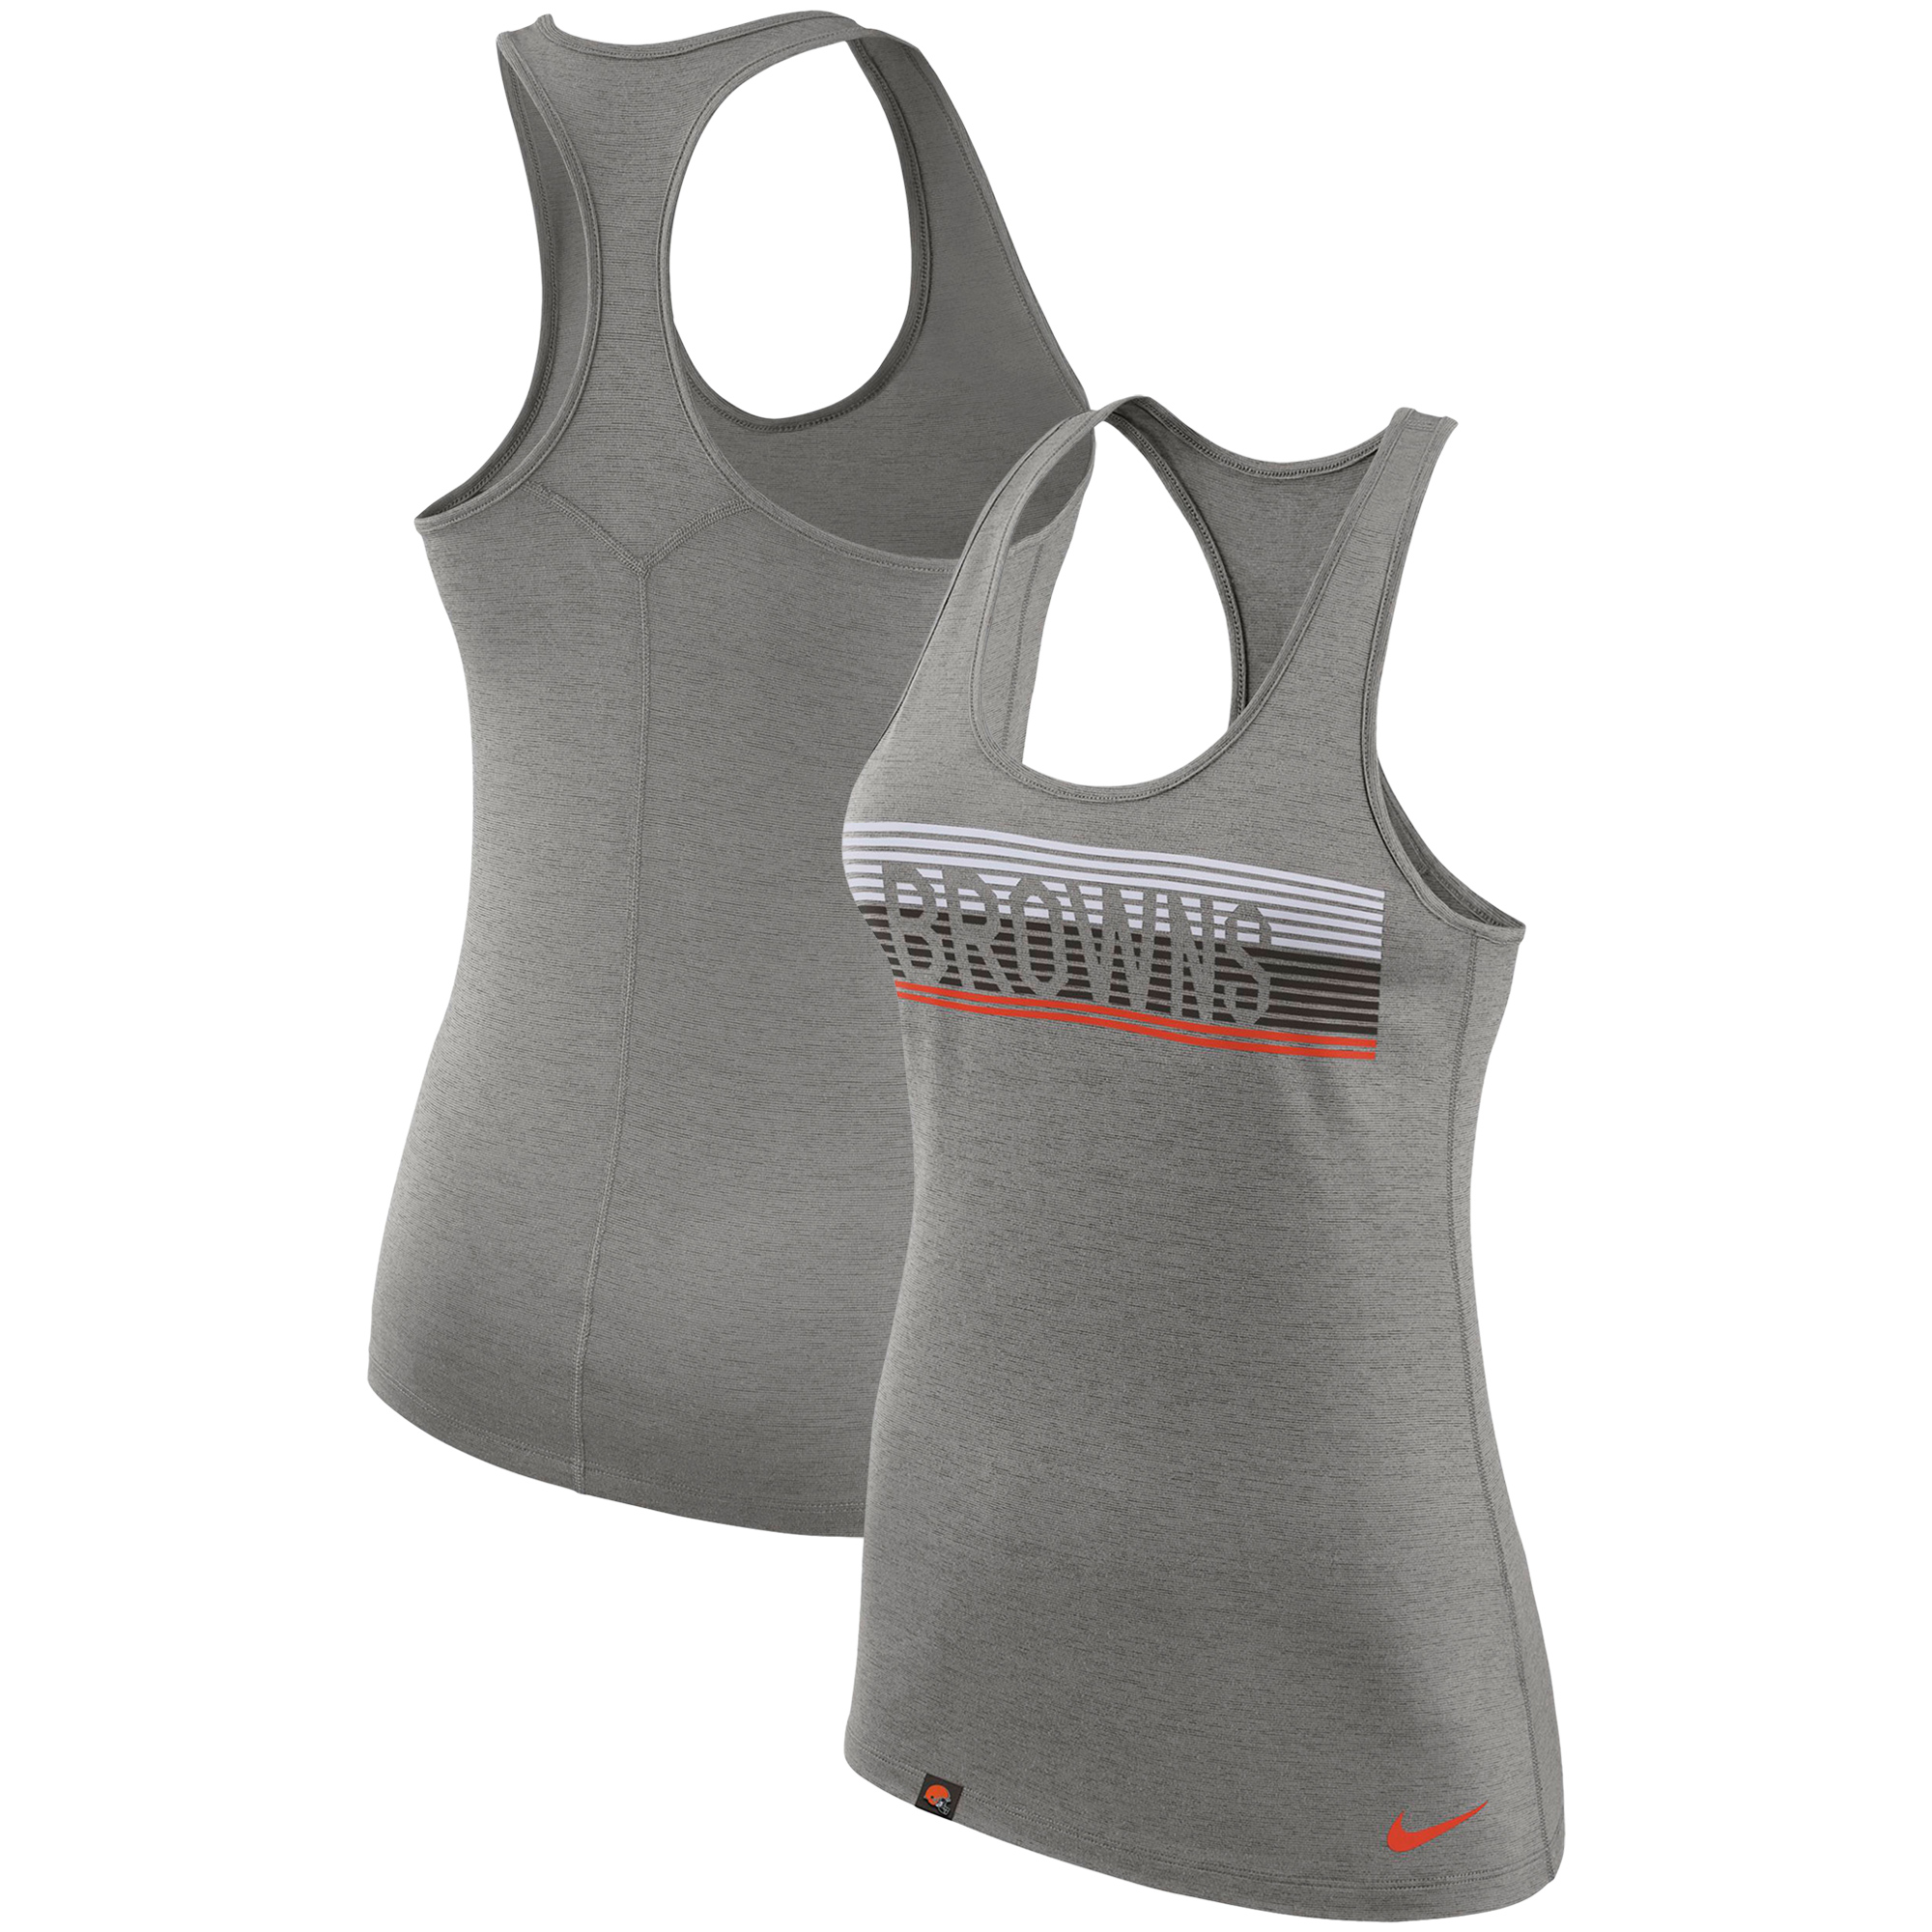 Cleveland Browns Nike Women's Touch Performance Tank Top - Heathered Charcoal